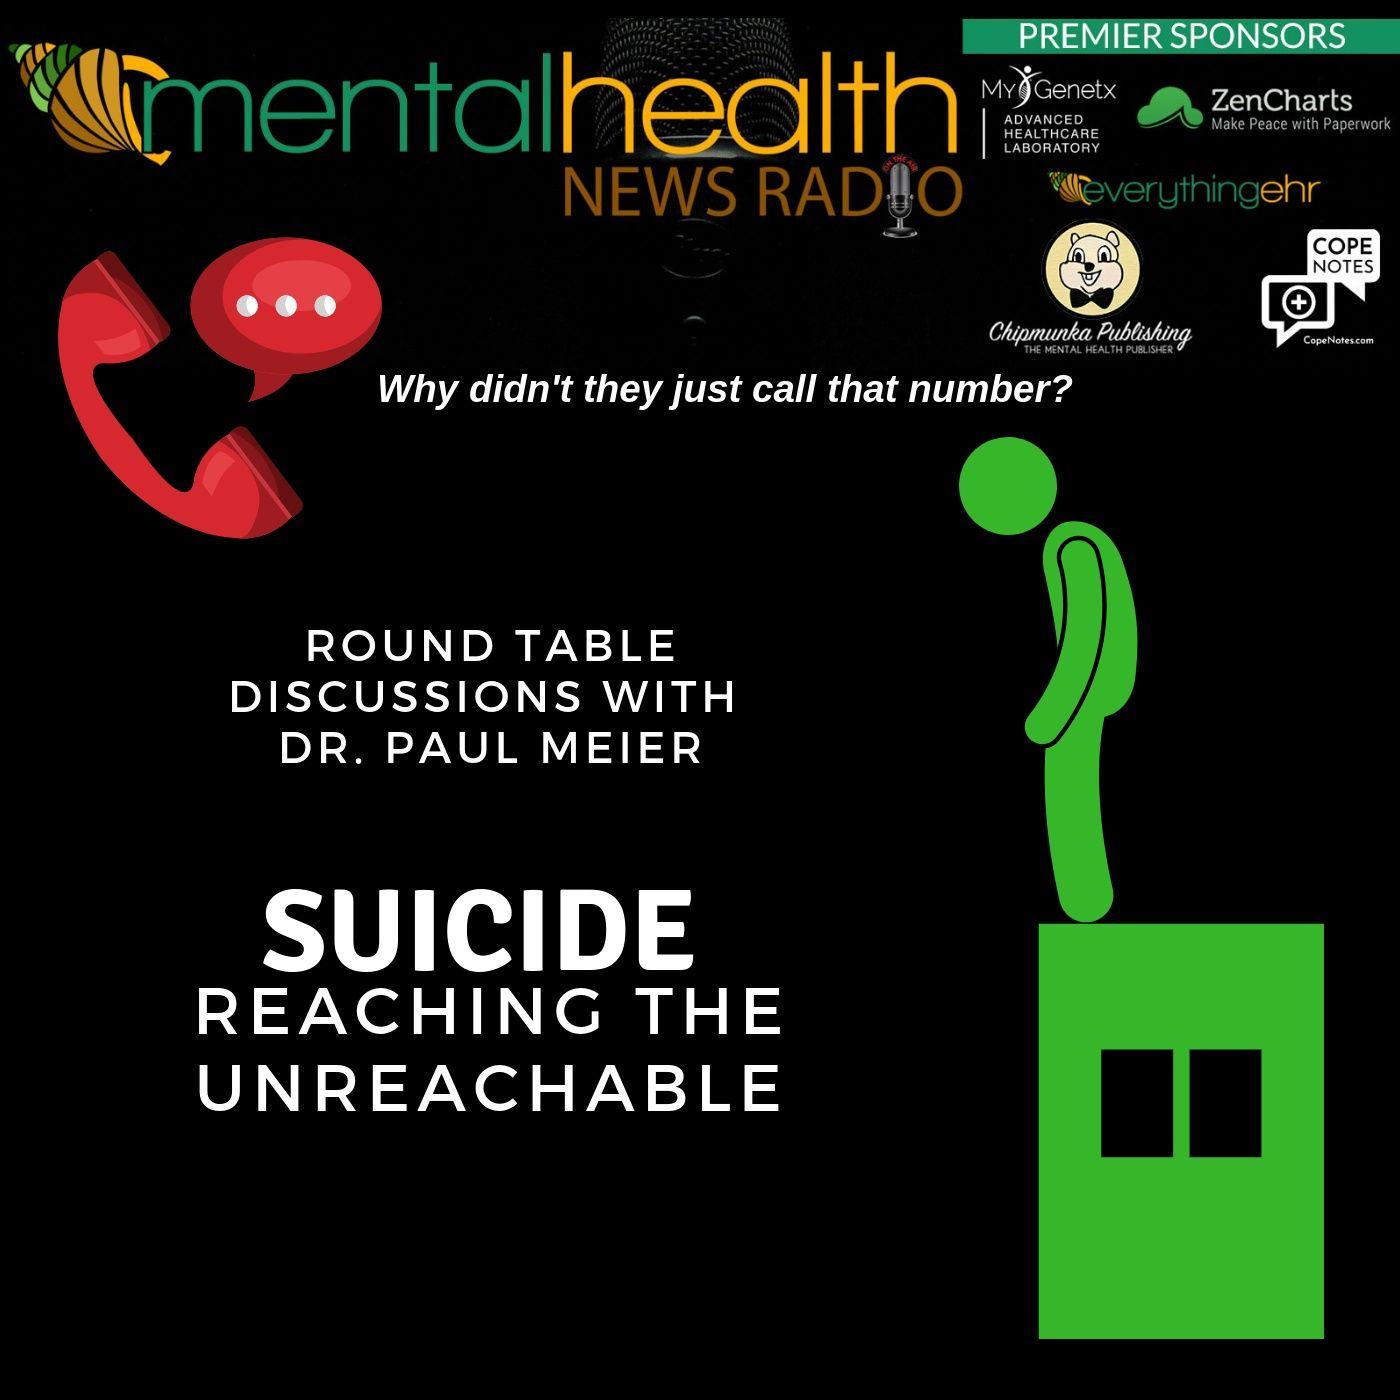 Mental Health News Radio - Round Table with Dr. Paul Meier: Suicide - Reaching the Unreachable